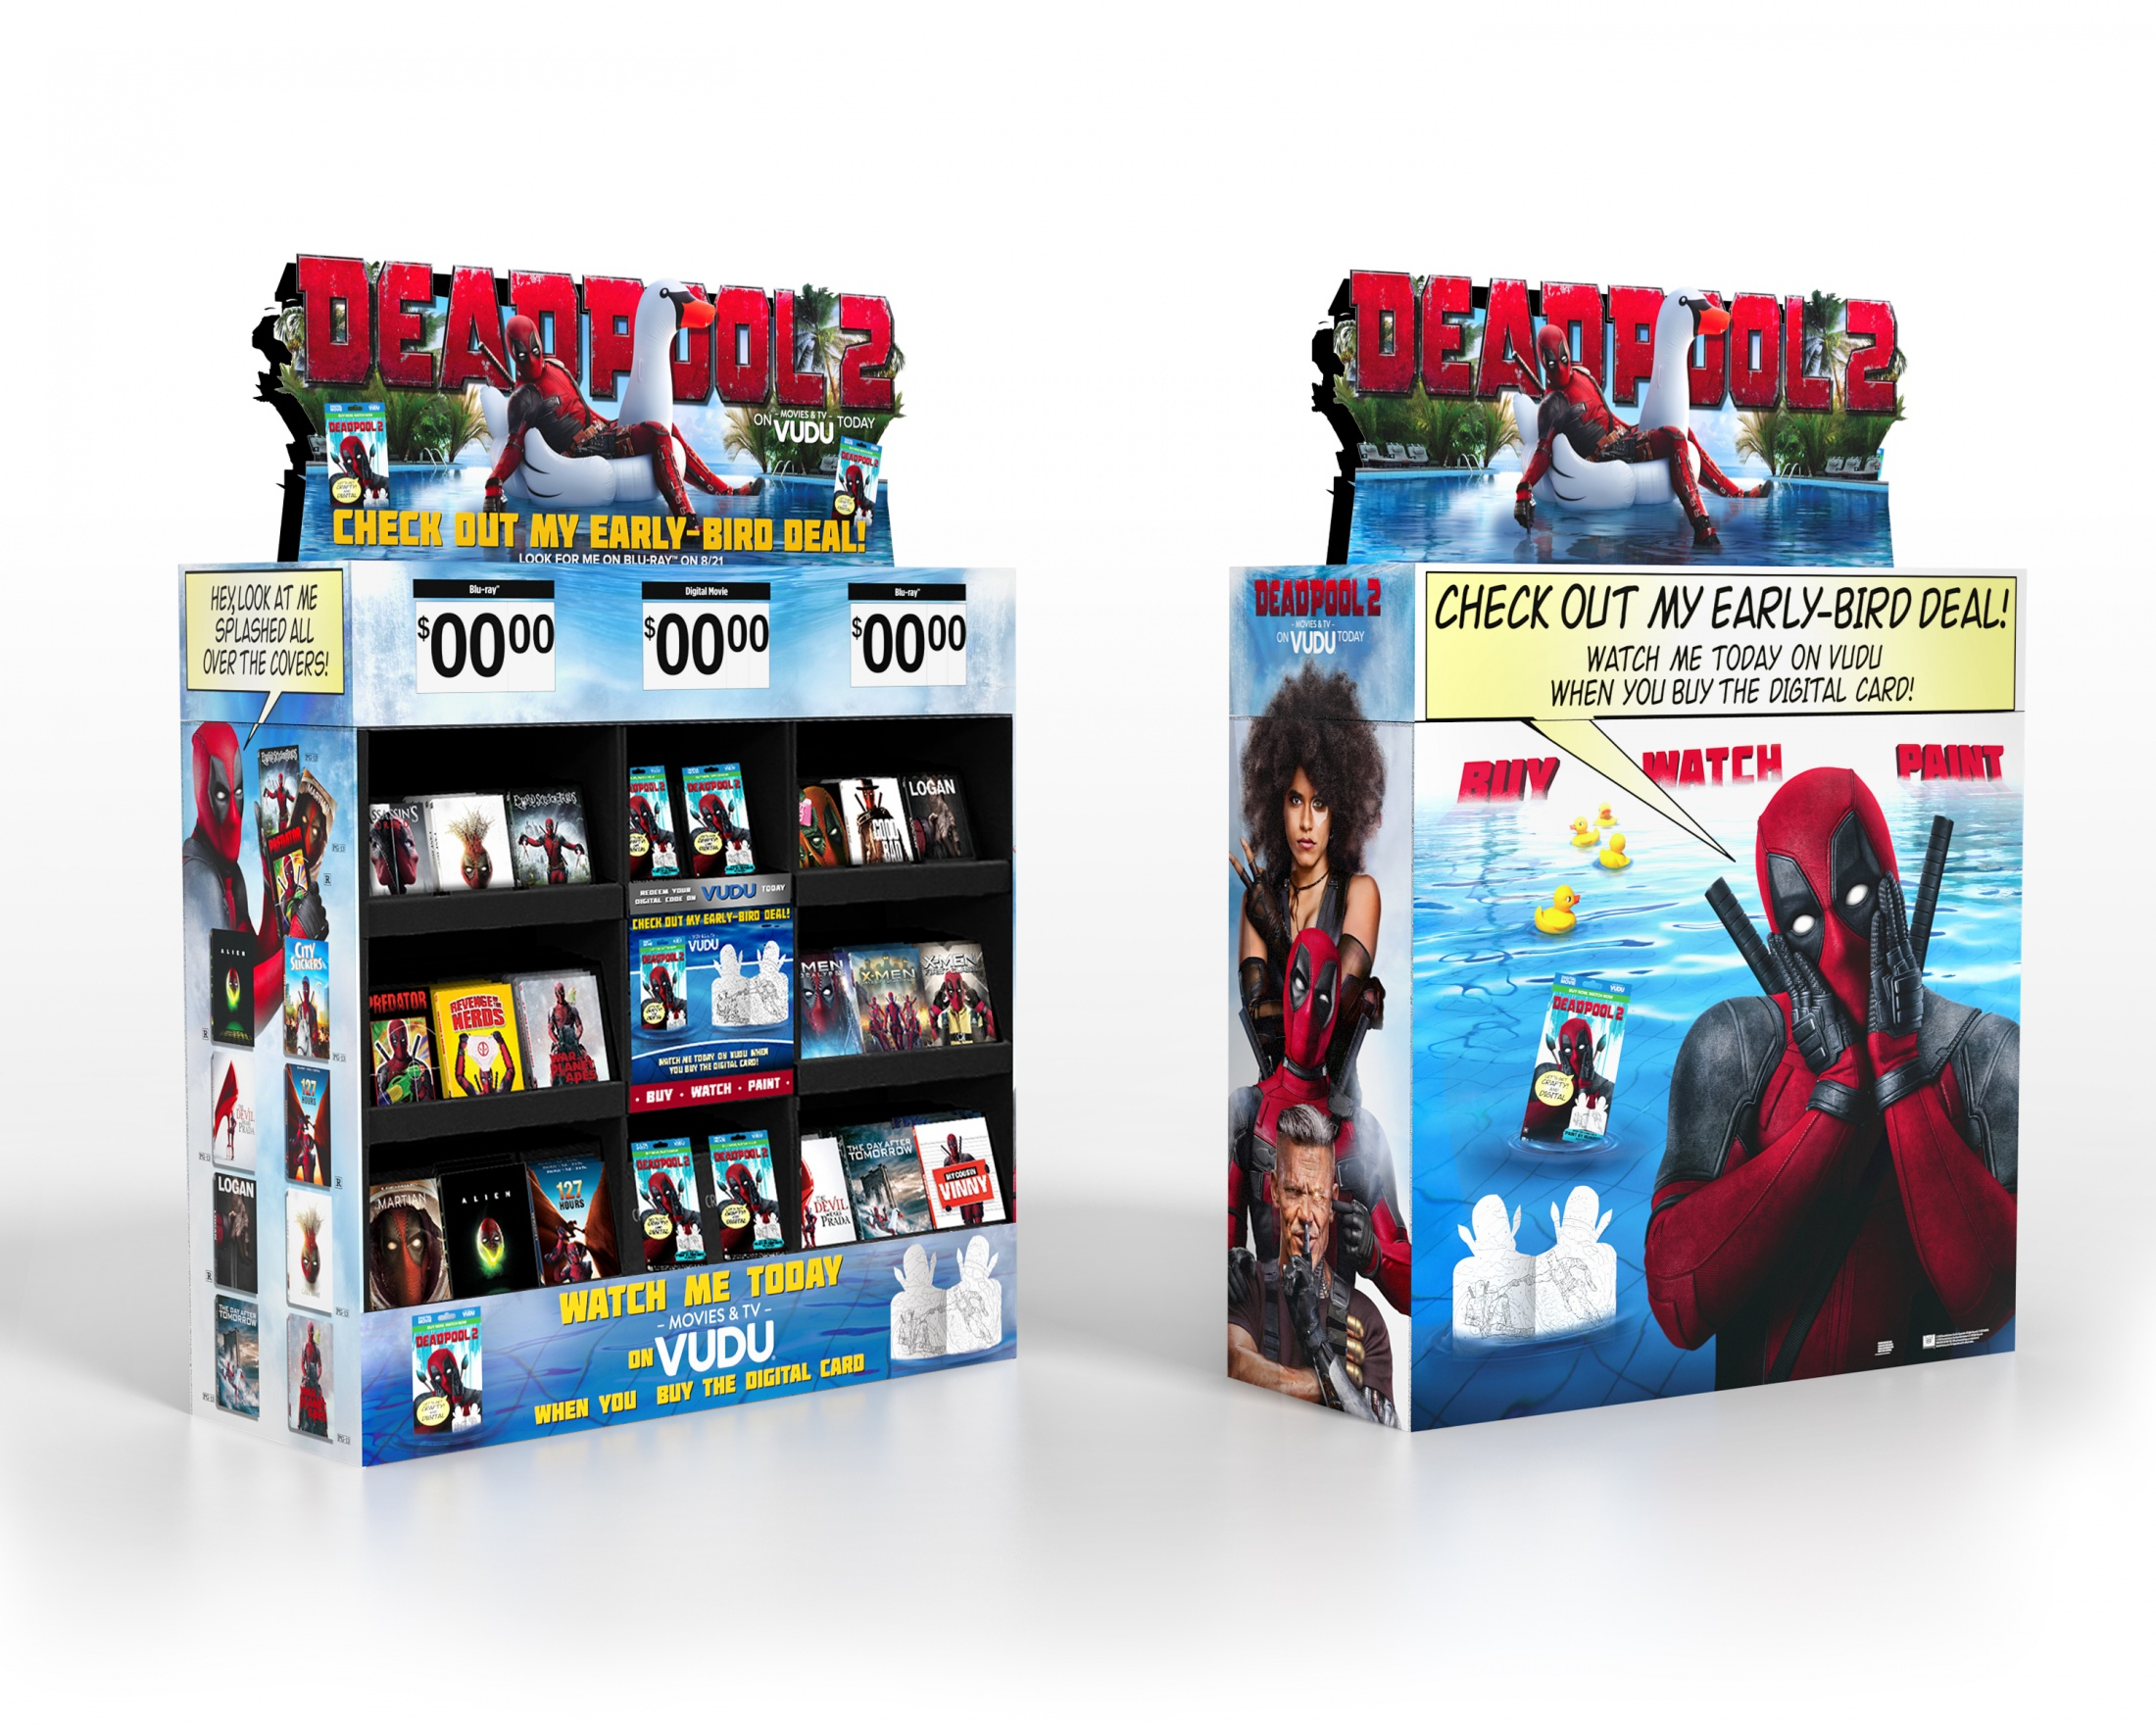 Thumbnail for DEADPOOL 2 Home Entertainment Display: WT1 8/7 Digital Cube